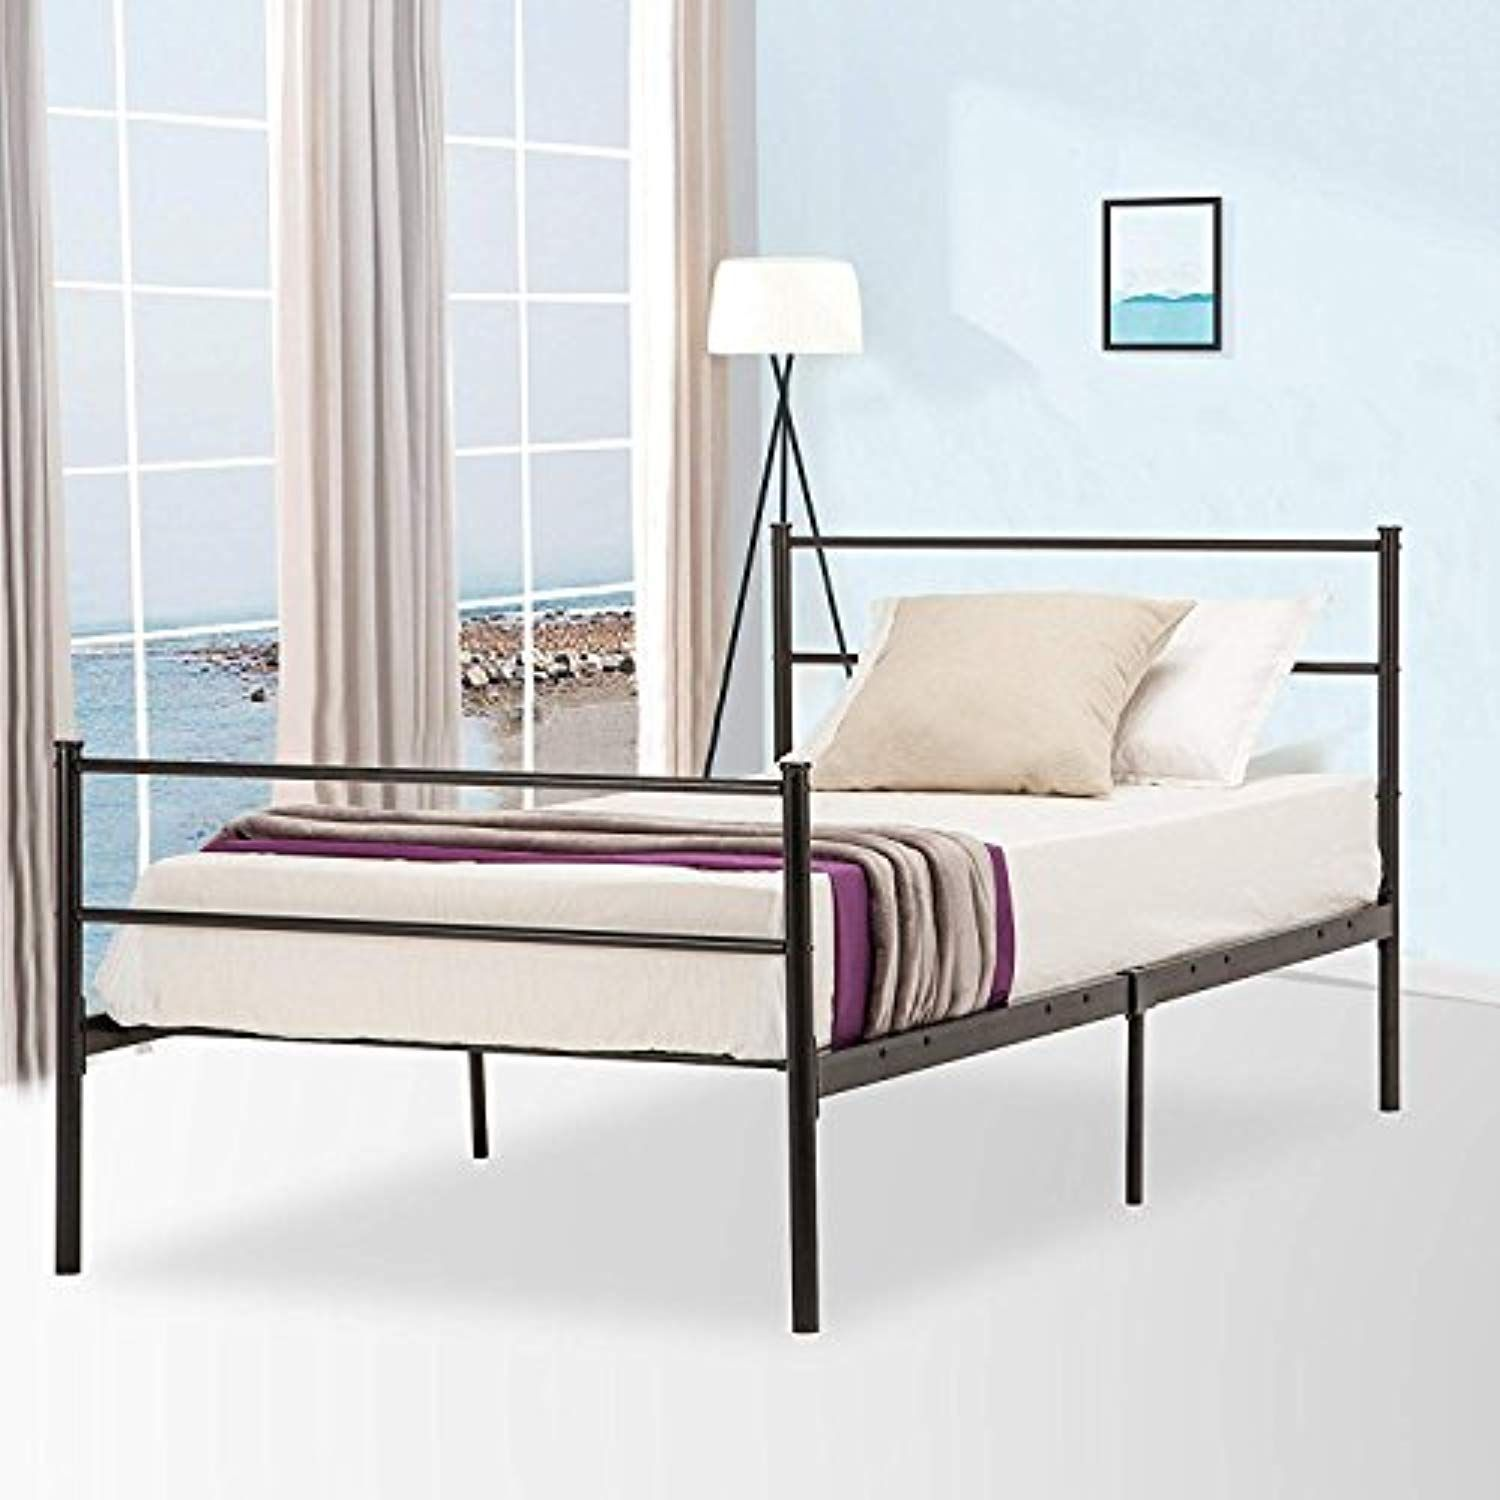 Mecor Reinforced Metal Bed Frame Twin Size Platform Bed With Metal Headboard Footboard And 6 Legs N Twin Size Metal Bed Frame Metal Bed Frame Bedroom Headboard